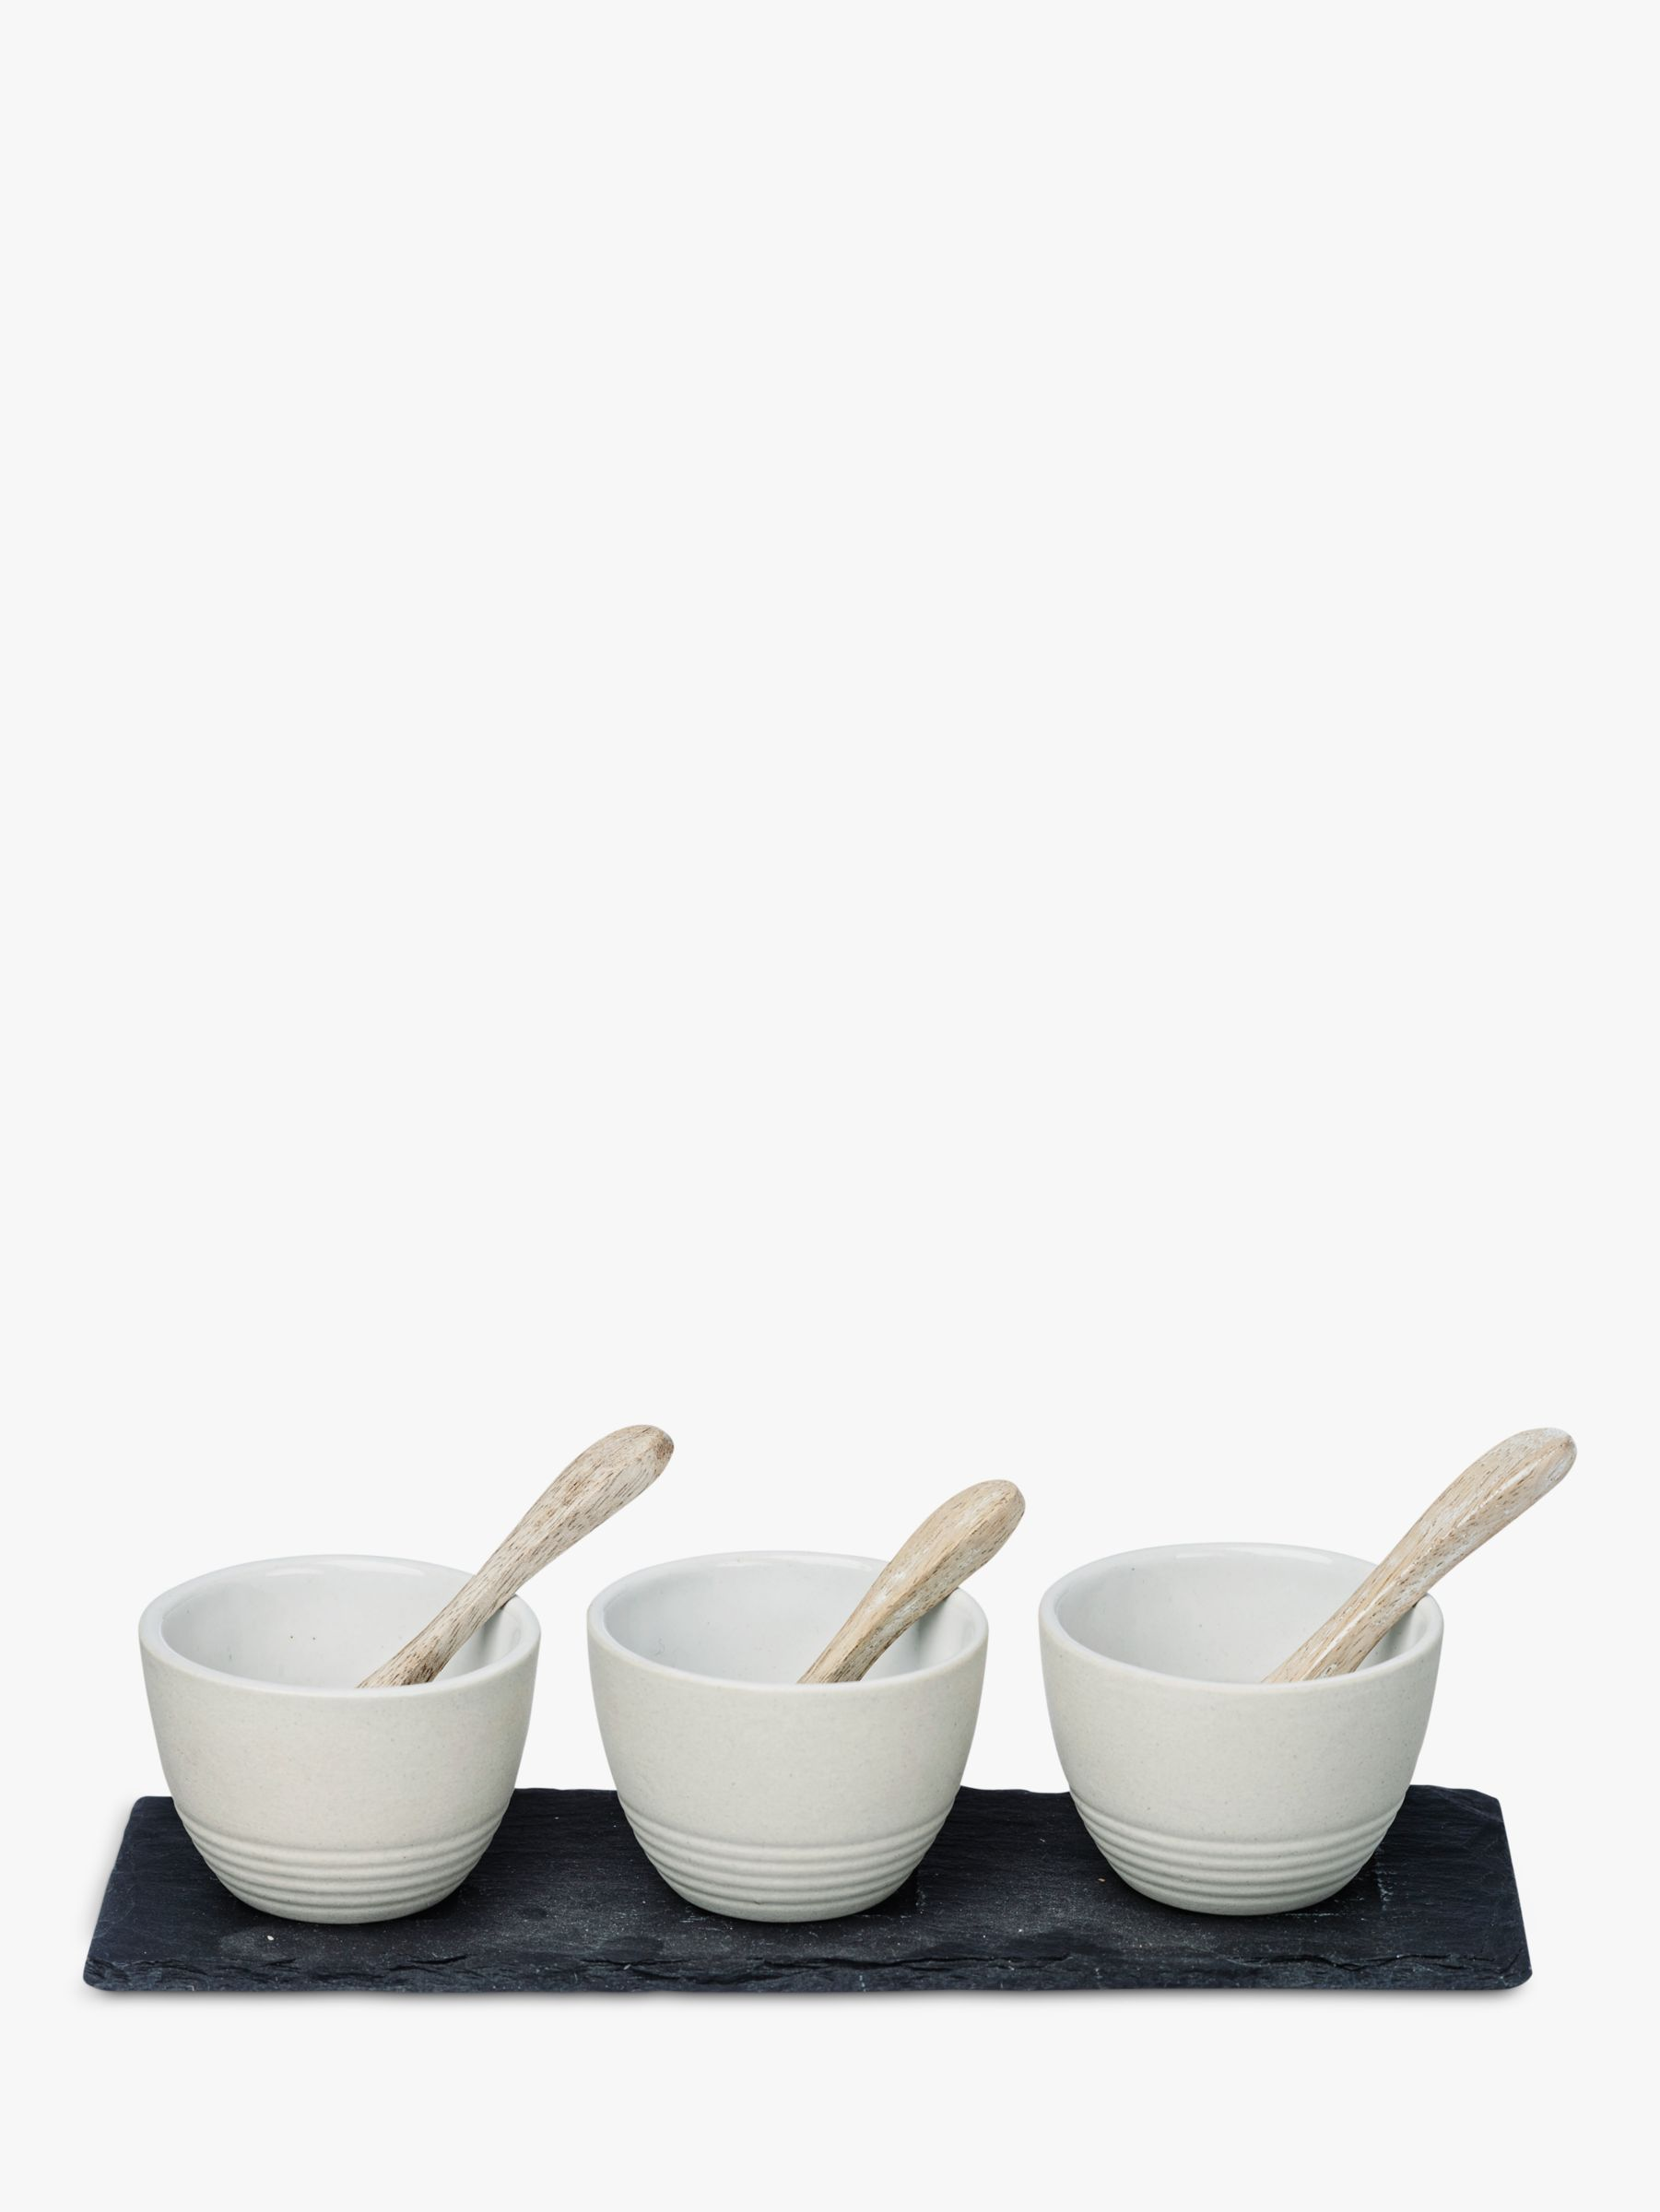 Just Slate Just Slate Condiment Pots and Spoons, Set of 3